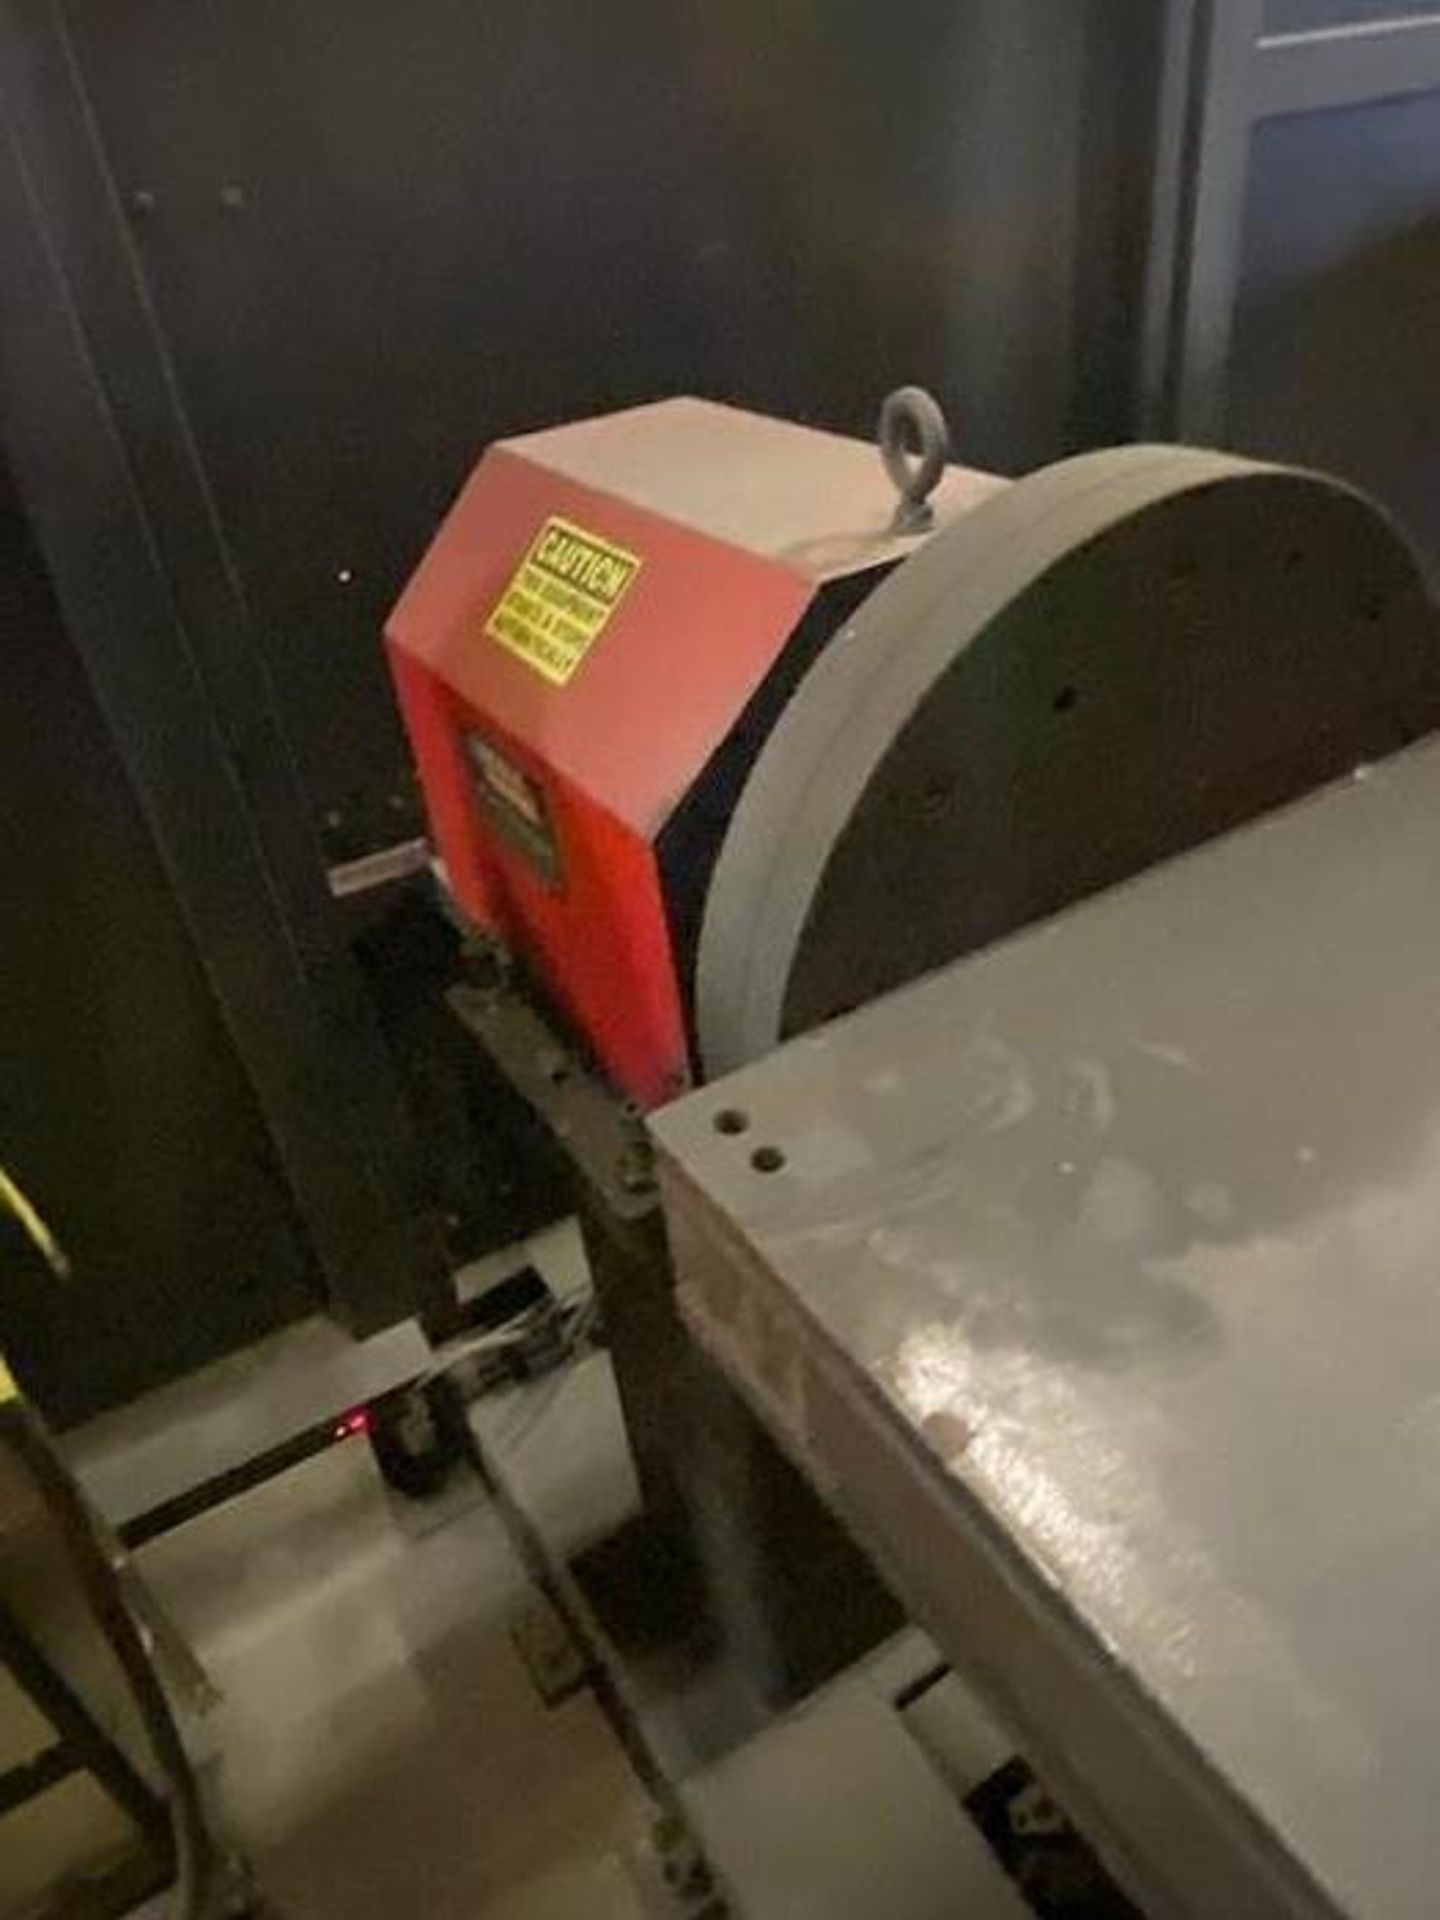 FANUC/LINCOLN DUAL TRUNION WELD CELL, FANUC ROBOT ARCMATE 120iB/10L WITH R-J3iB CONTROL - Image 8 of 11